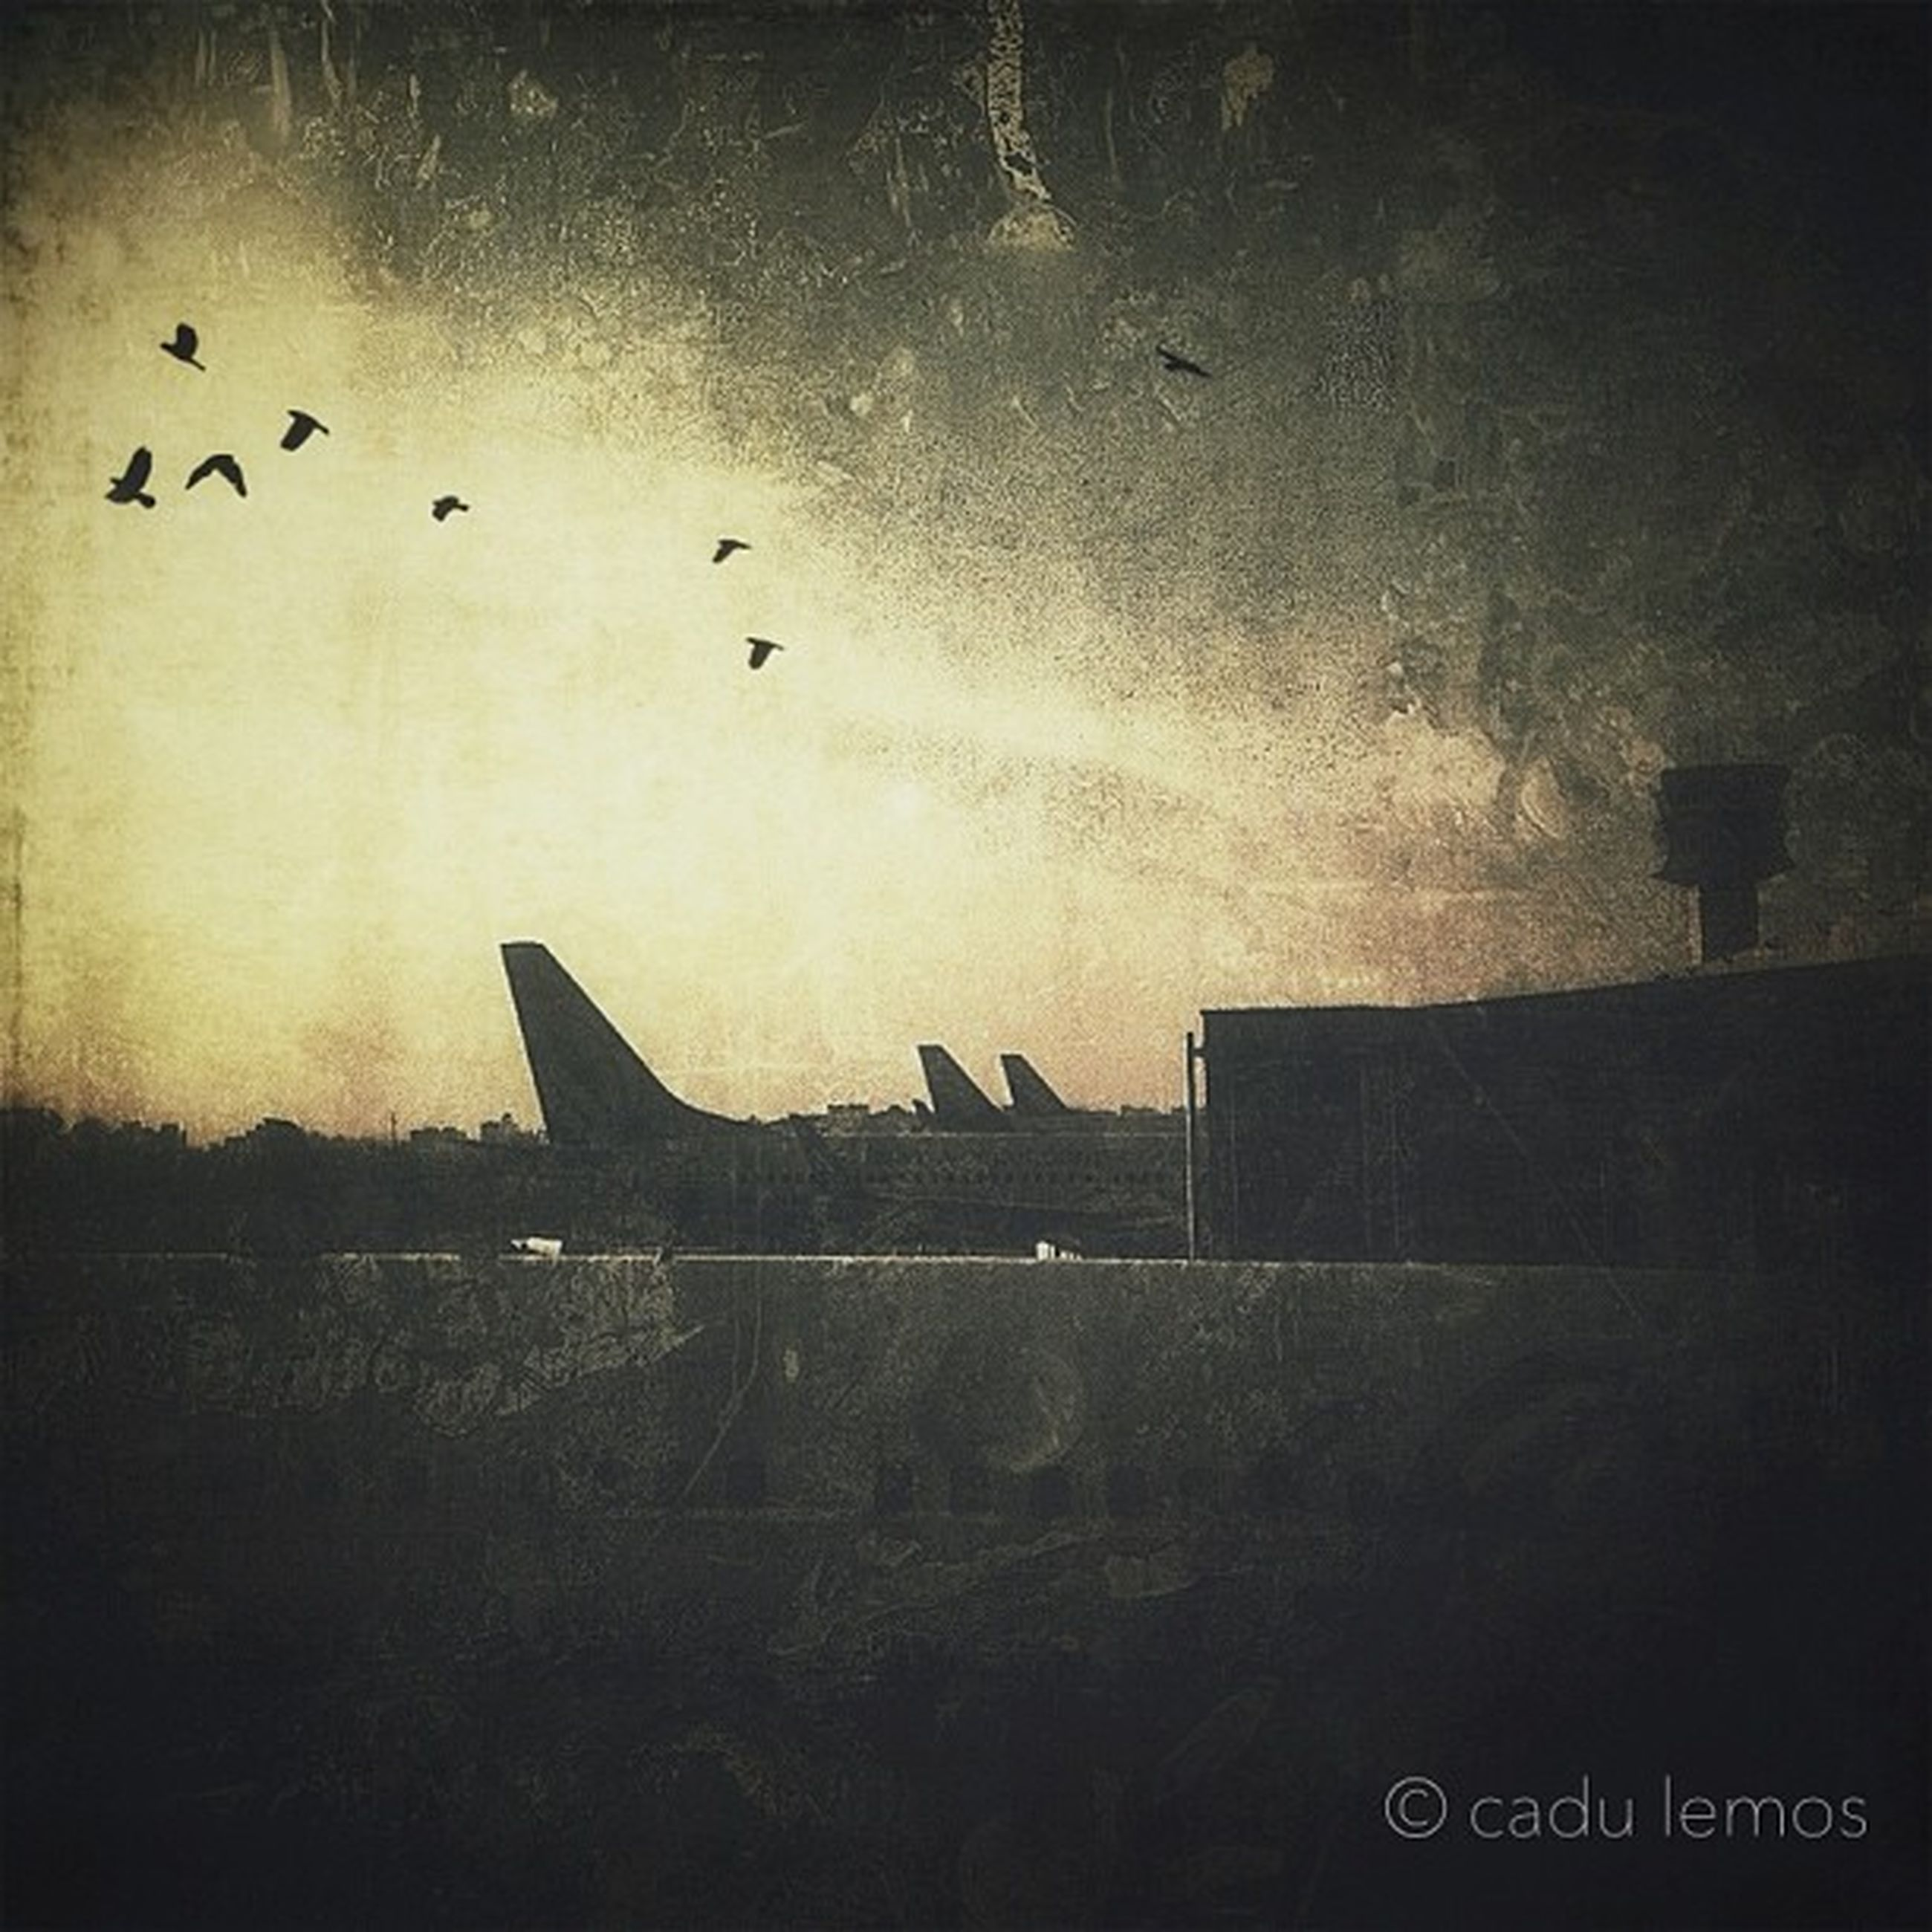 silhouette, flying, built structure, architecture, building exterior, bird, sky, low angle view, dusk, copy space, outdoors, no people, sunset, transportation, nature, night, dark, airplane, flock of birds